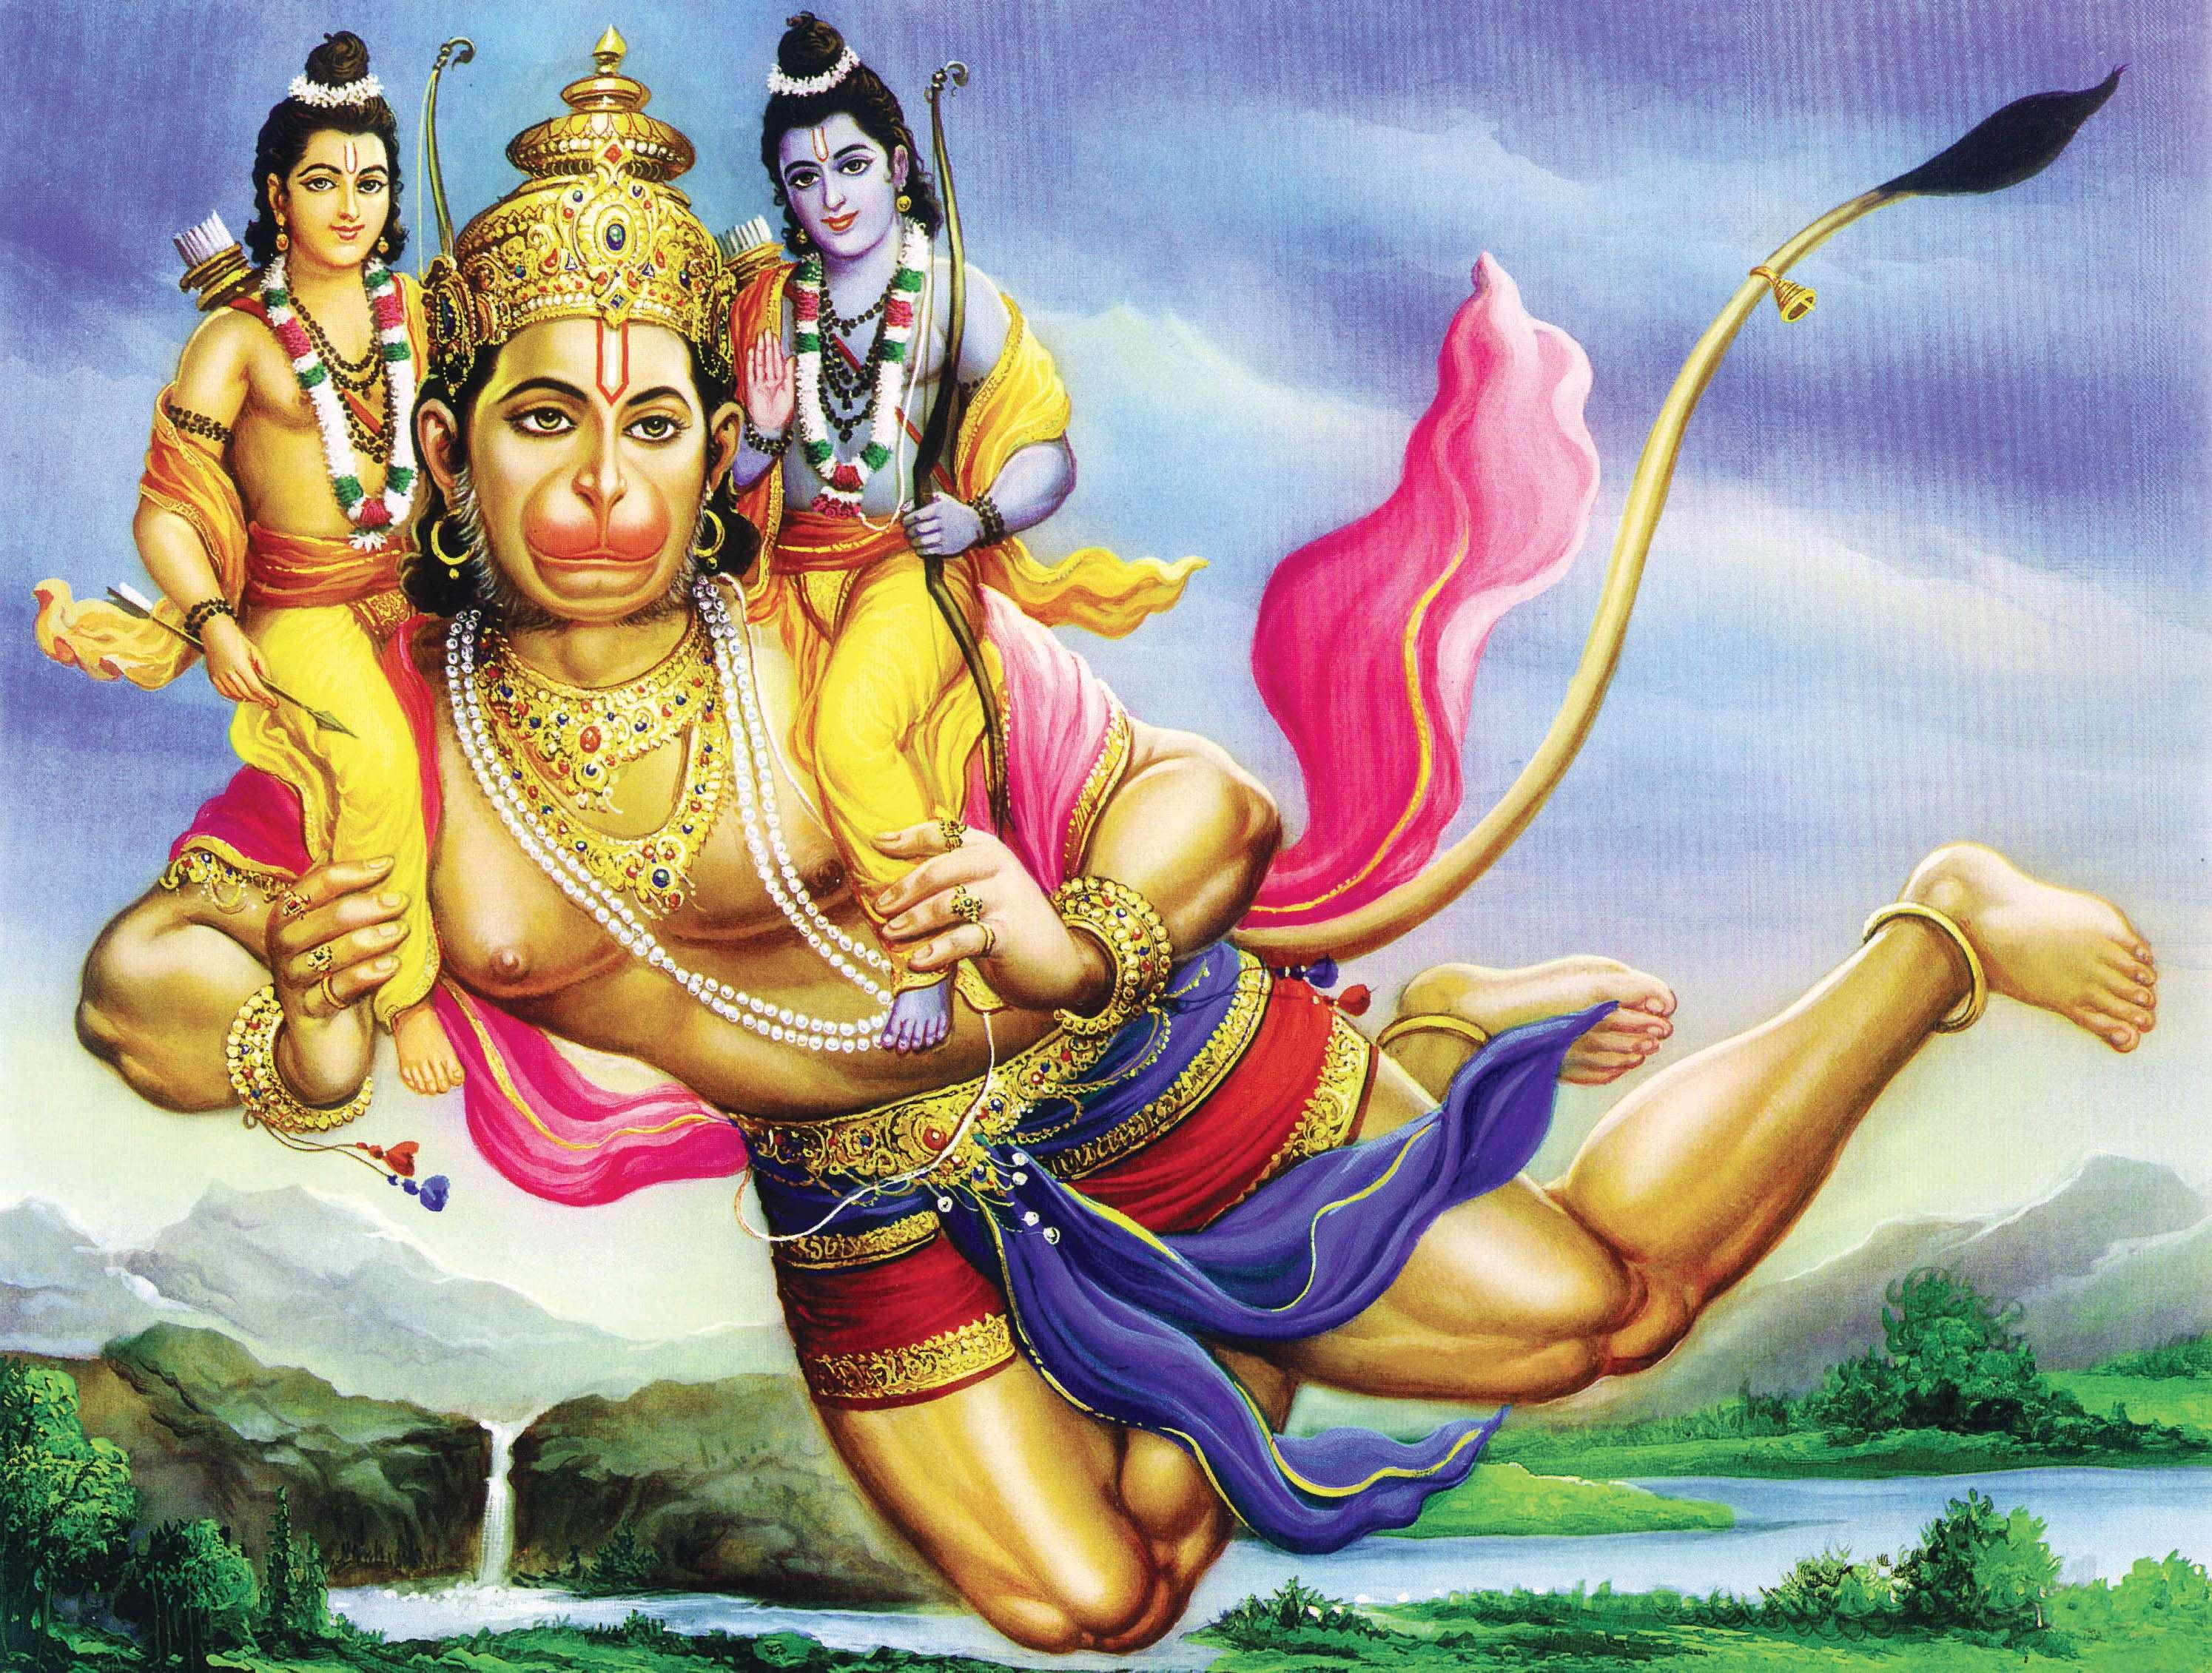 Beauttiful Hanuman Image with Ran and Laxman!